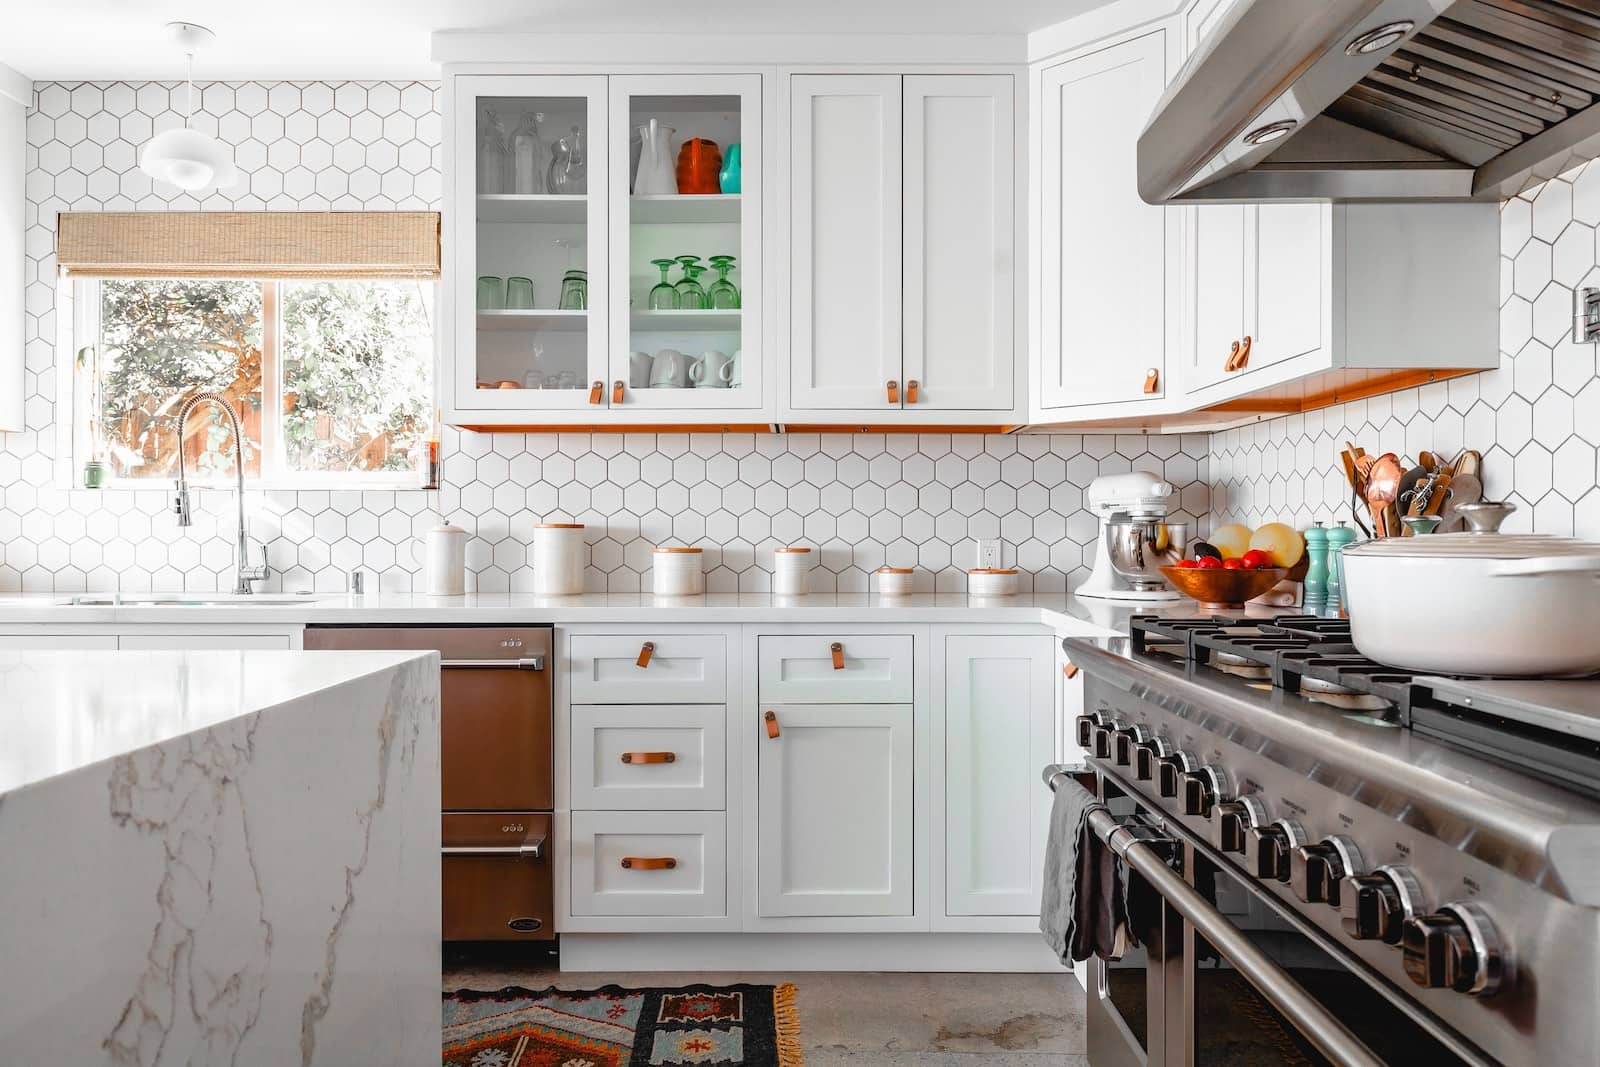 A brightly-lit kitchen with white walls of honeycomb-shaped tiles. The kitchentop on the left is made of white marble, and an oven sits on the right. Ahead, some white cabinets can be seen, some with windows